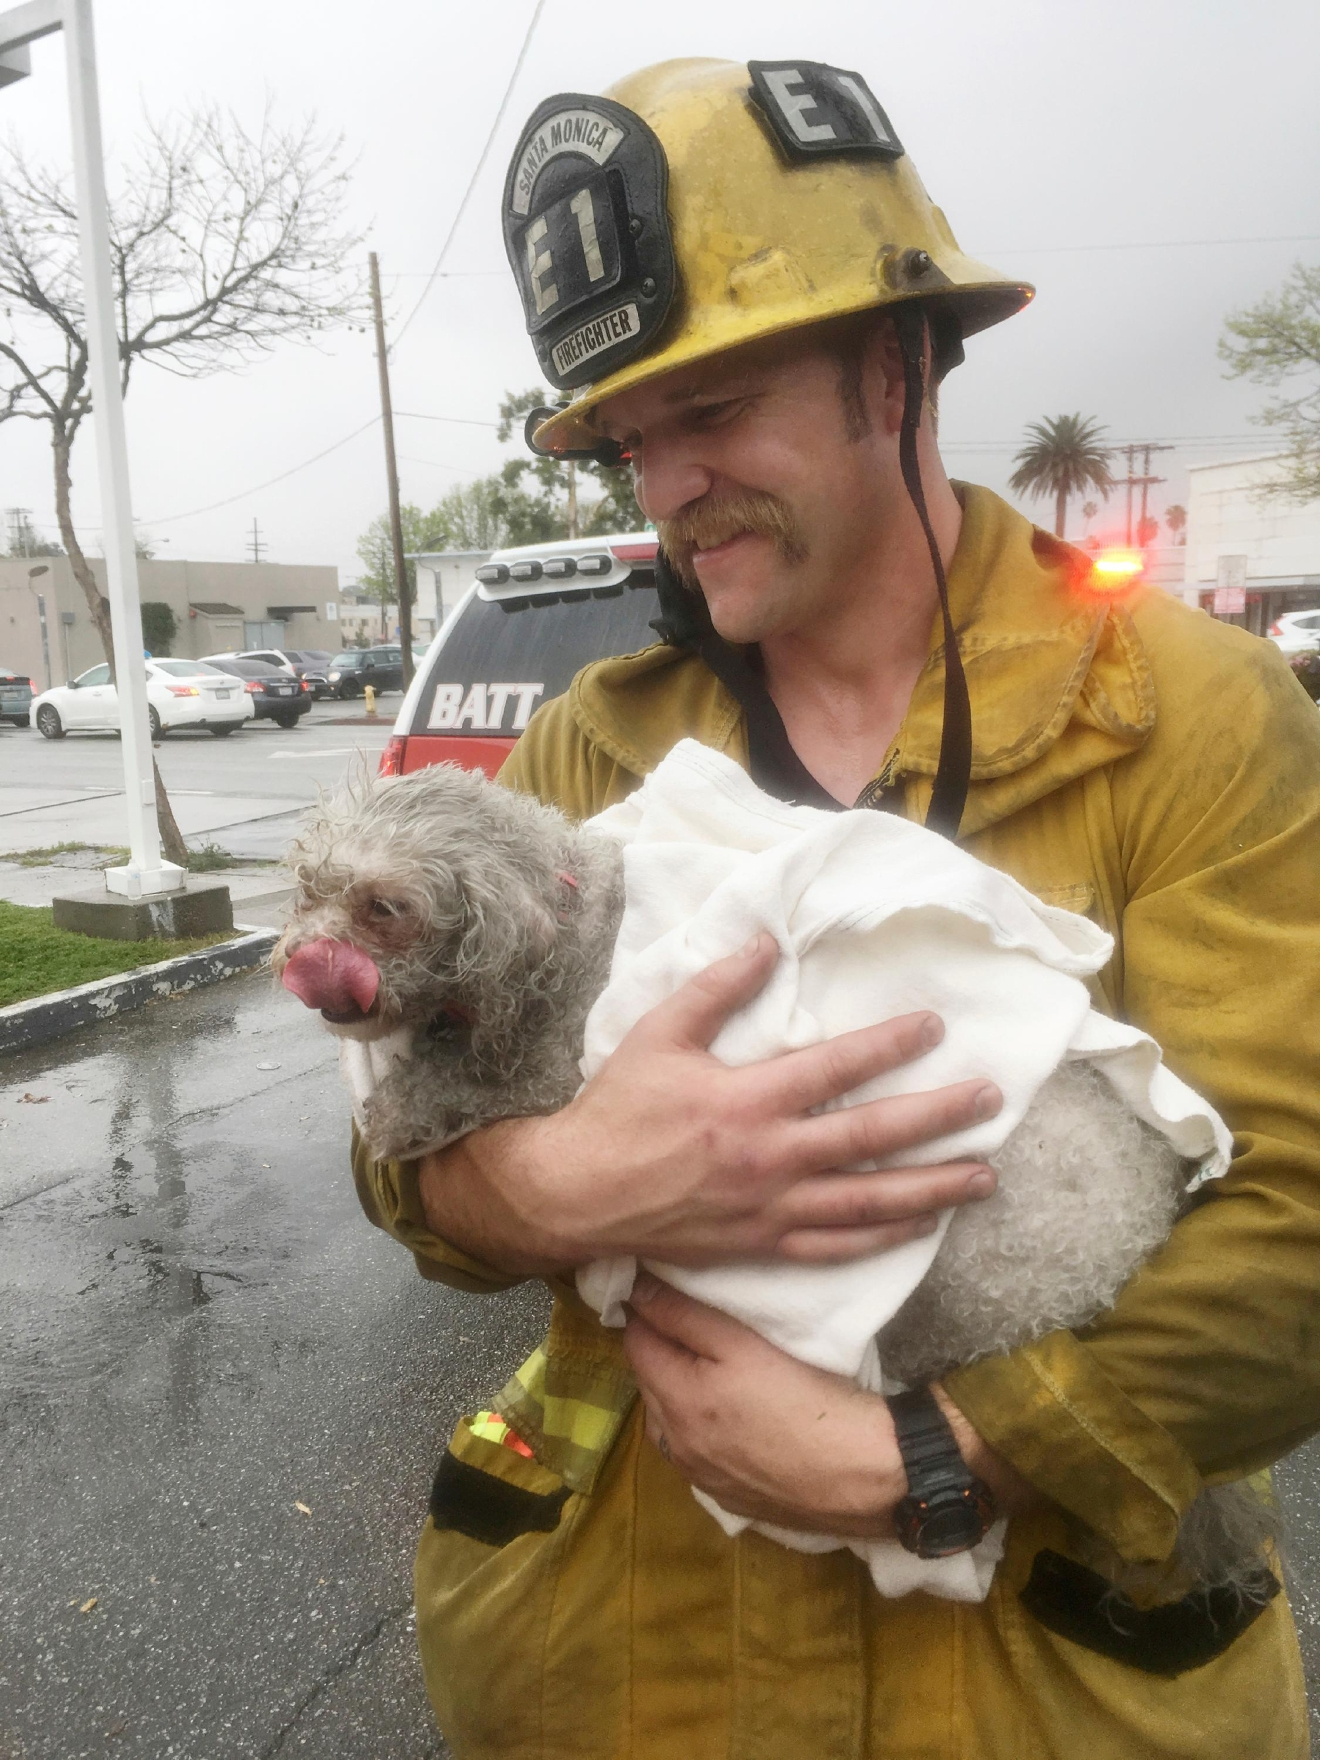 In this Tuesday, March 21, 2017 photo provided by Crystal Lamirande, Santa Monica firefighter Andrew Klein holding her dog, Nalu, in Santa Monica, Calif. Klein spent minutes giving mouth-to-snout resuscitation to the dog, who was pulled from a burning apartment. The pooch spent the next 24 hours in an oxygen chamber and is doing well. (Courtesy of Crystal Lamirande via AP)